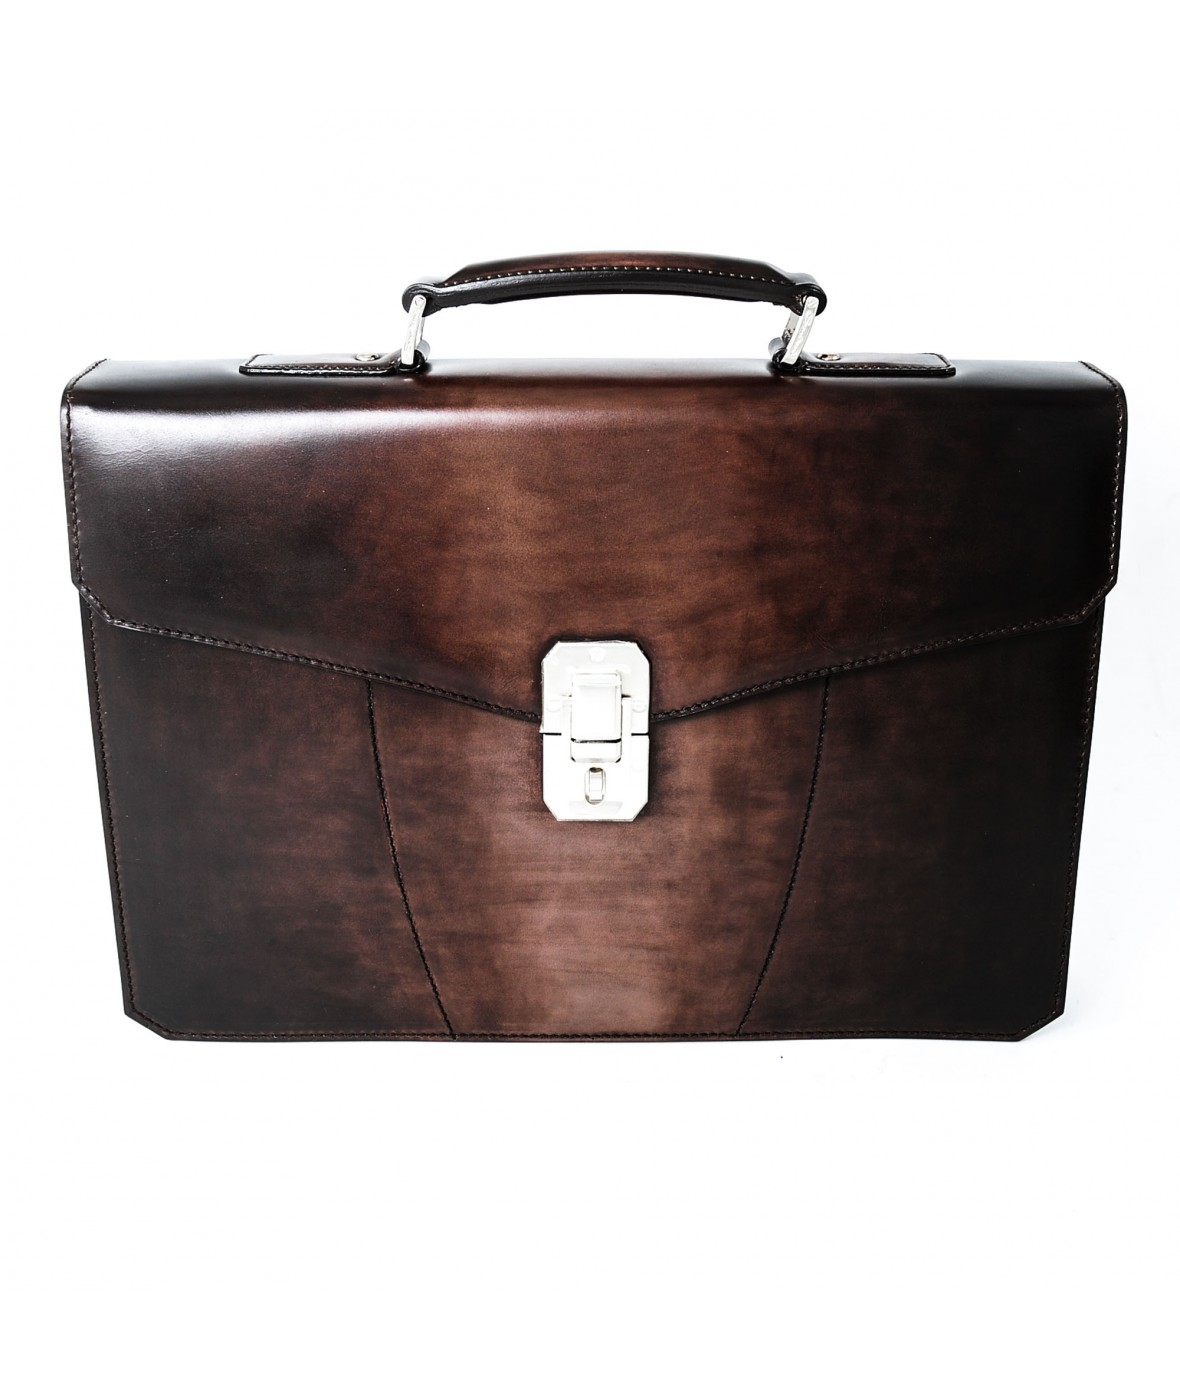 Santoni Porte-Documents Marron T50 (28096)